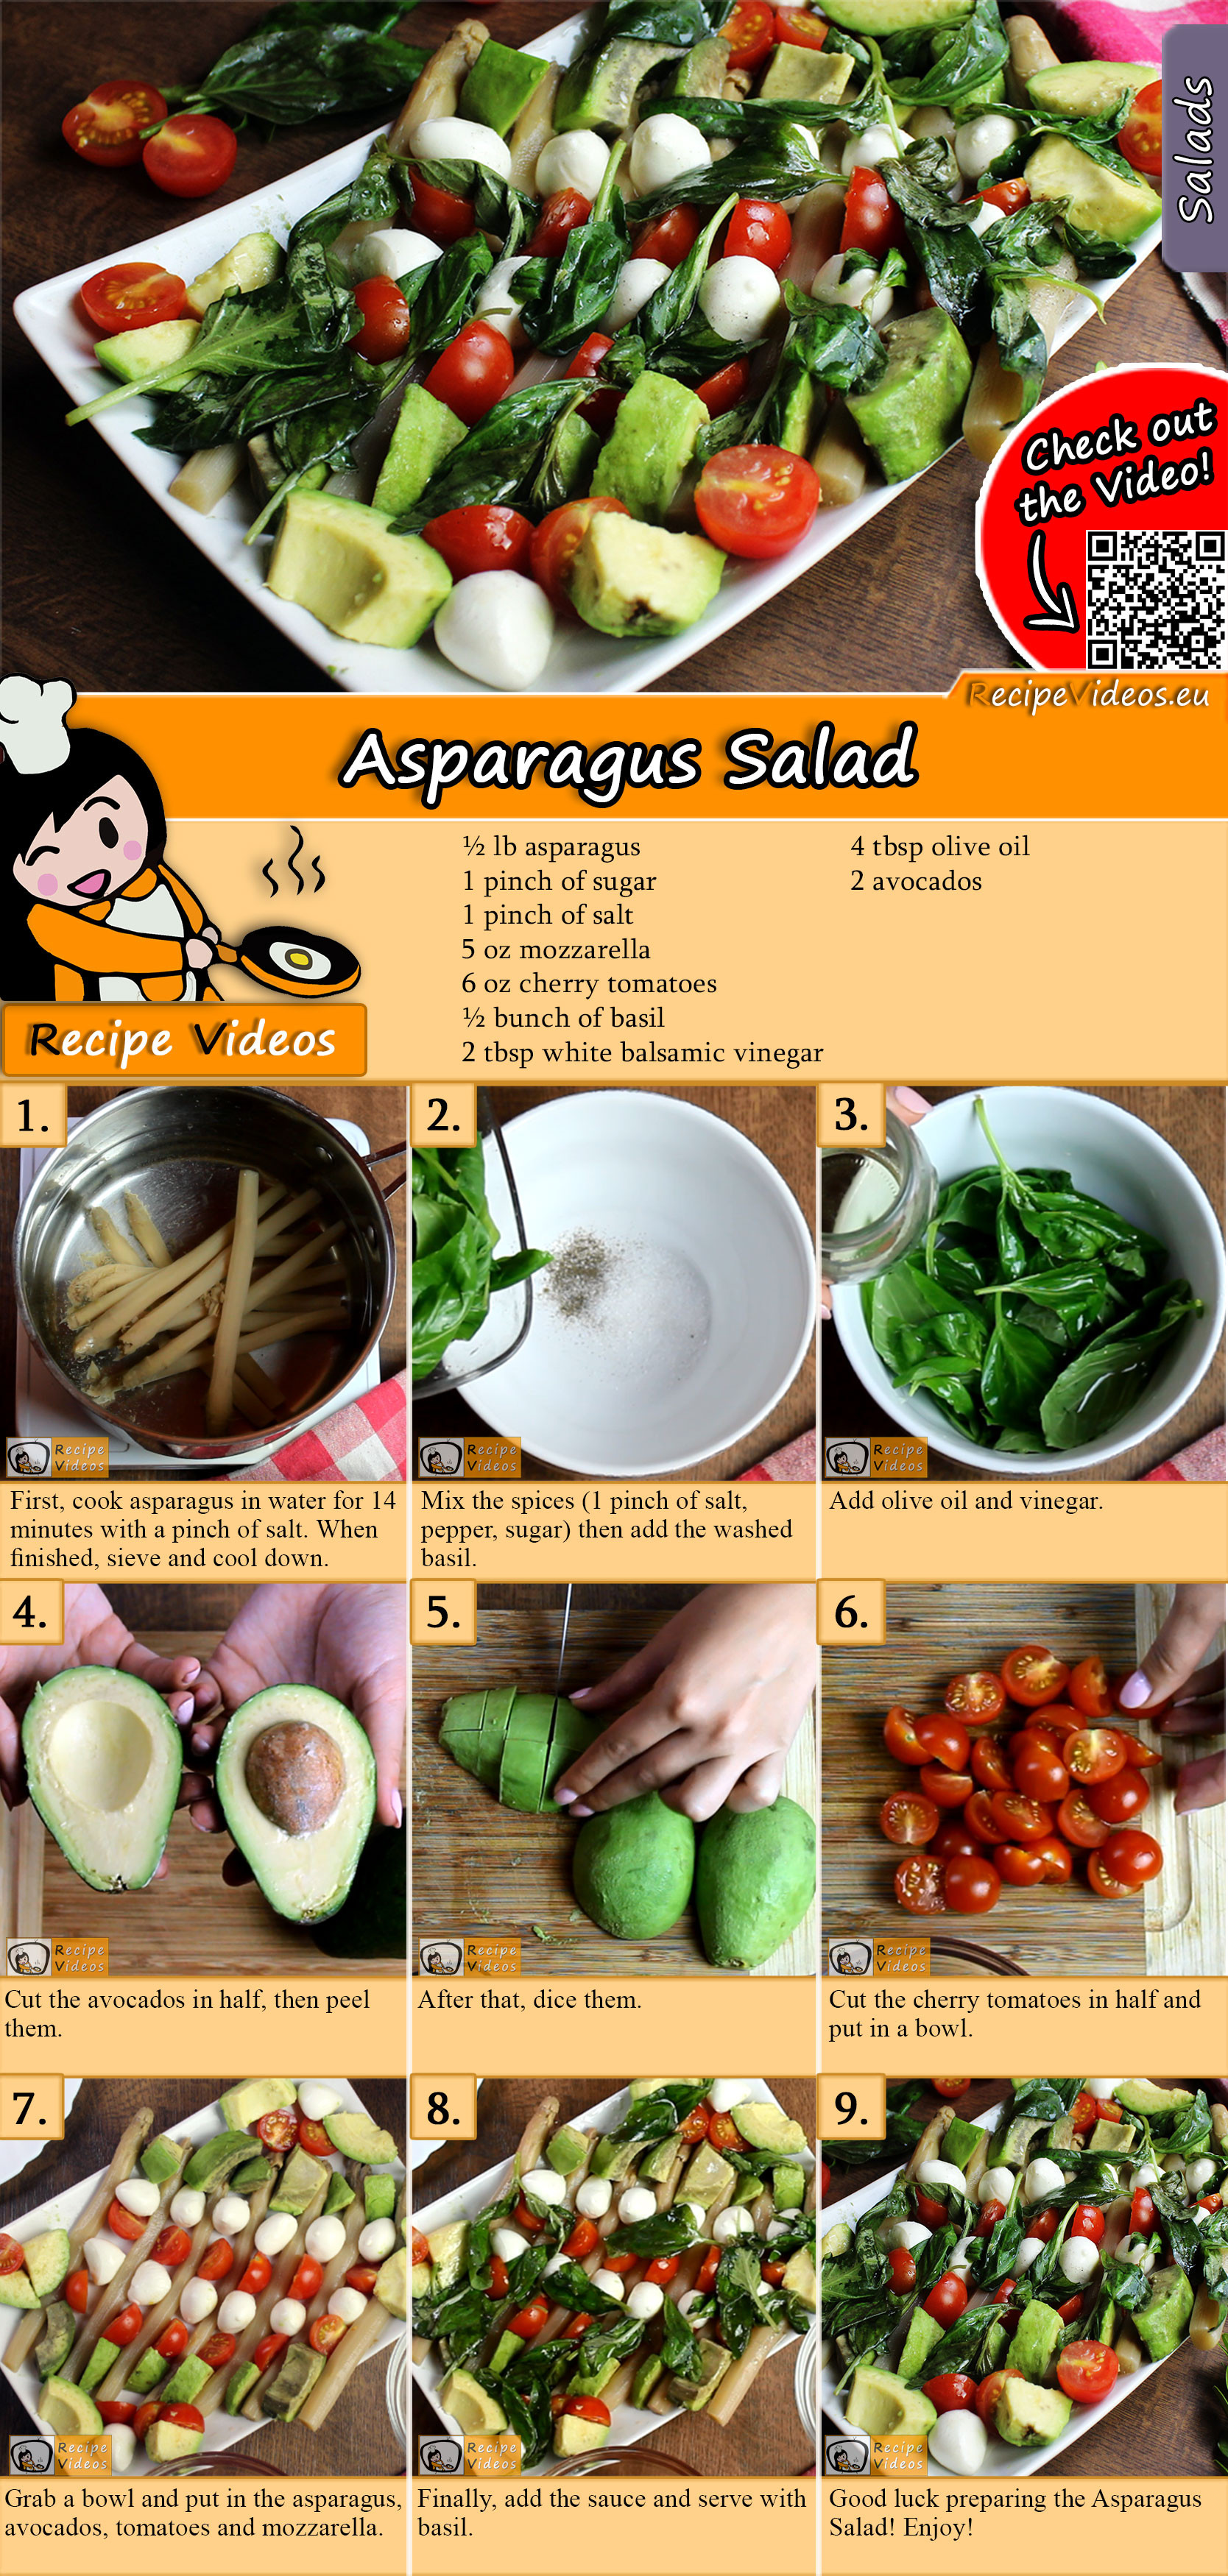 Asparagus salad recipe with video